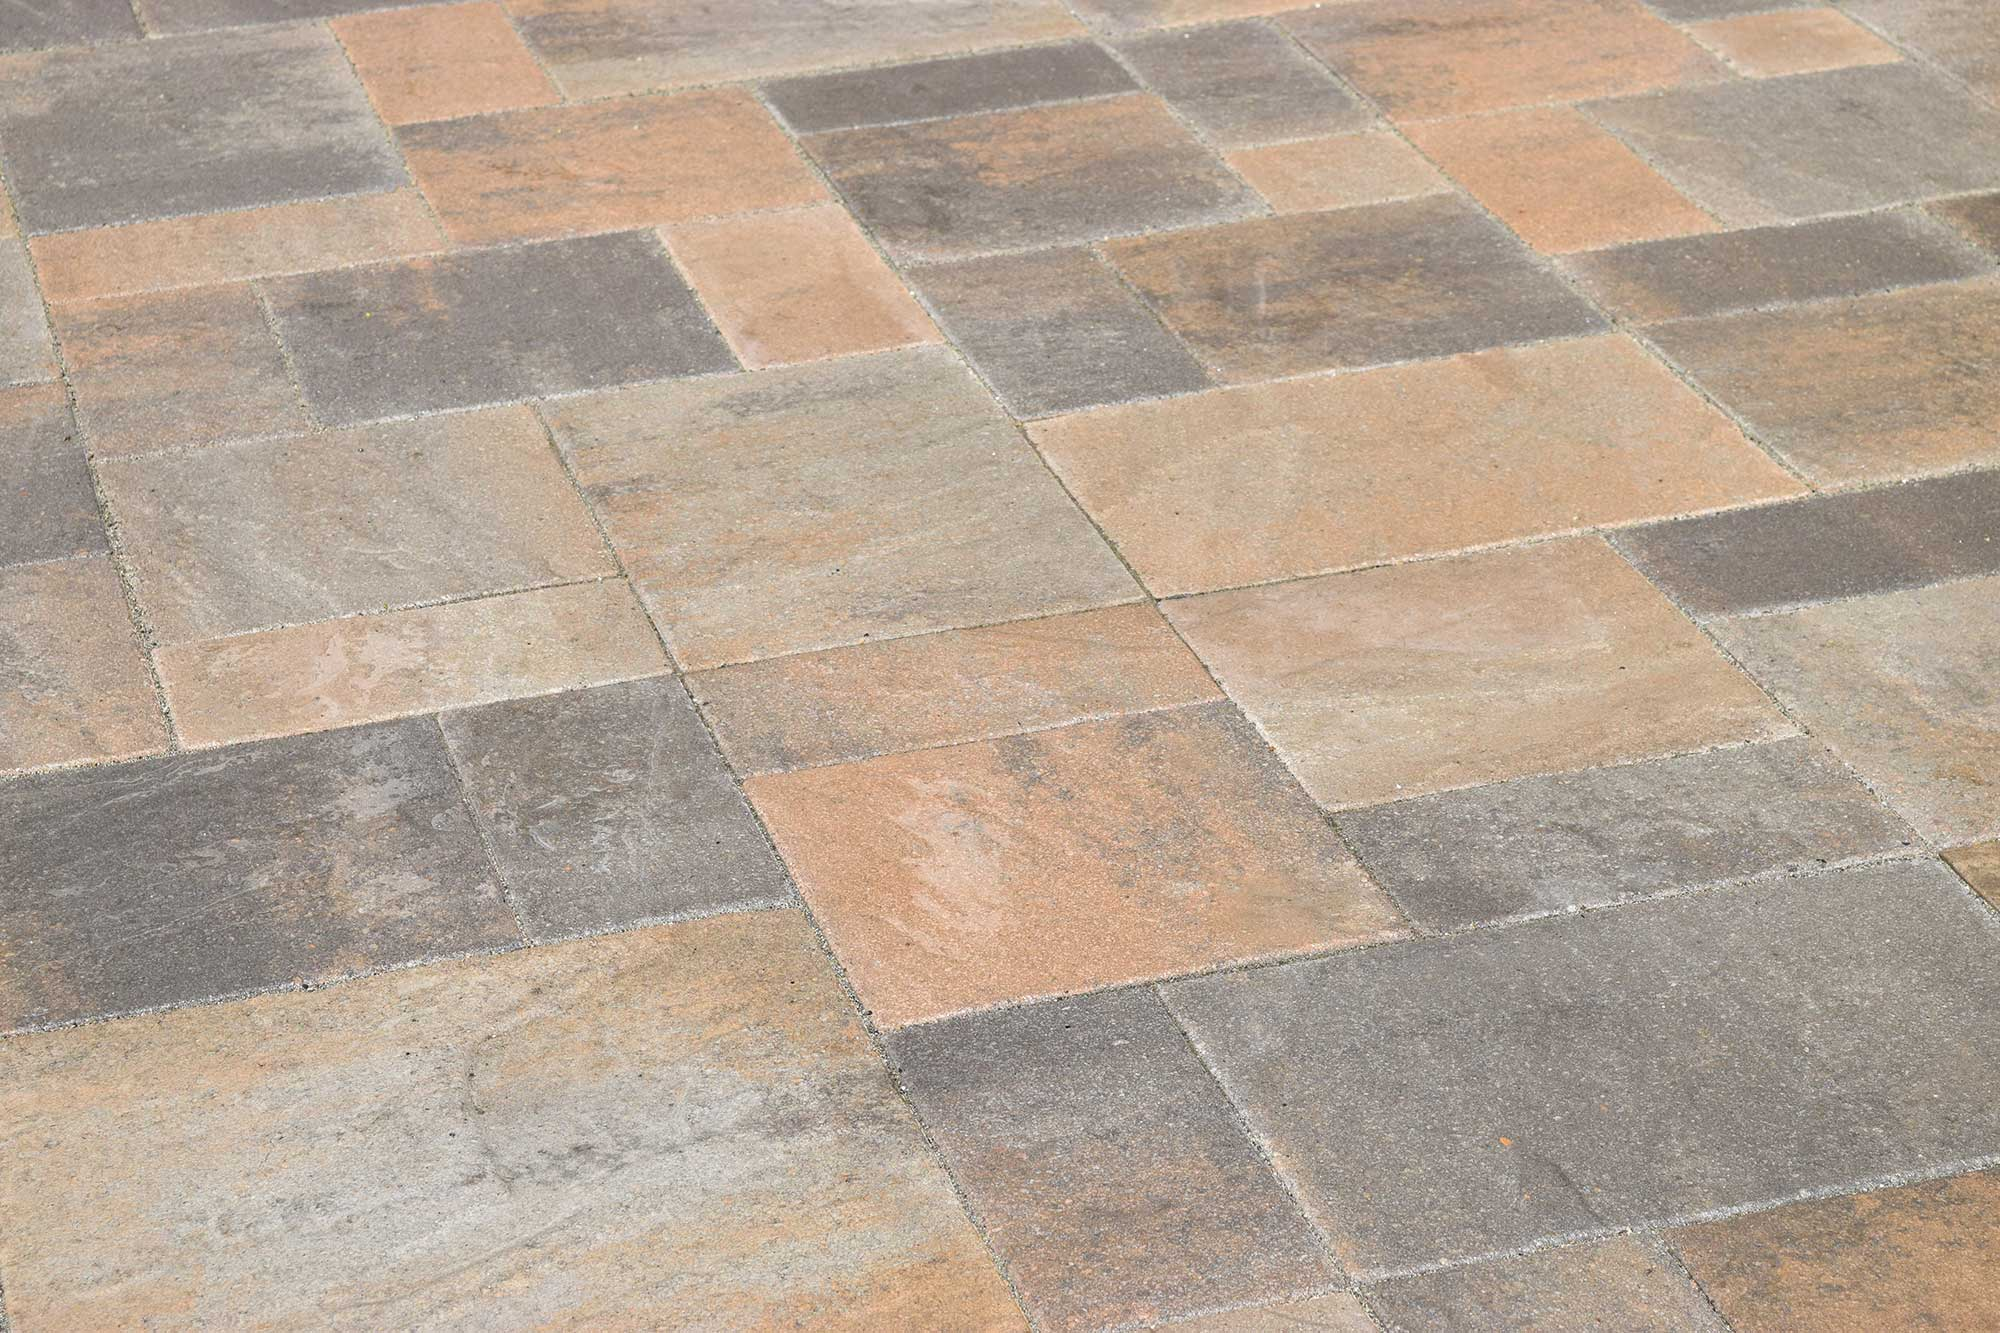 Western Interlock La Pietra Pavers